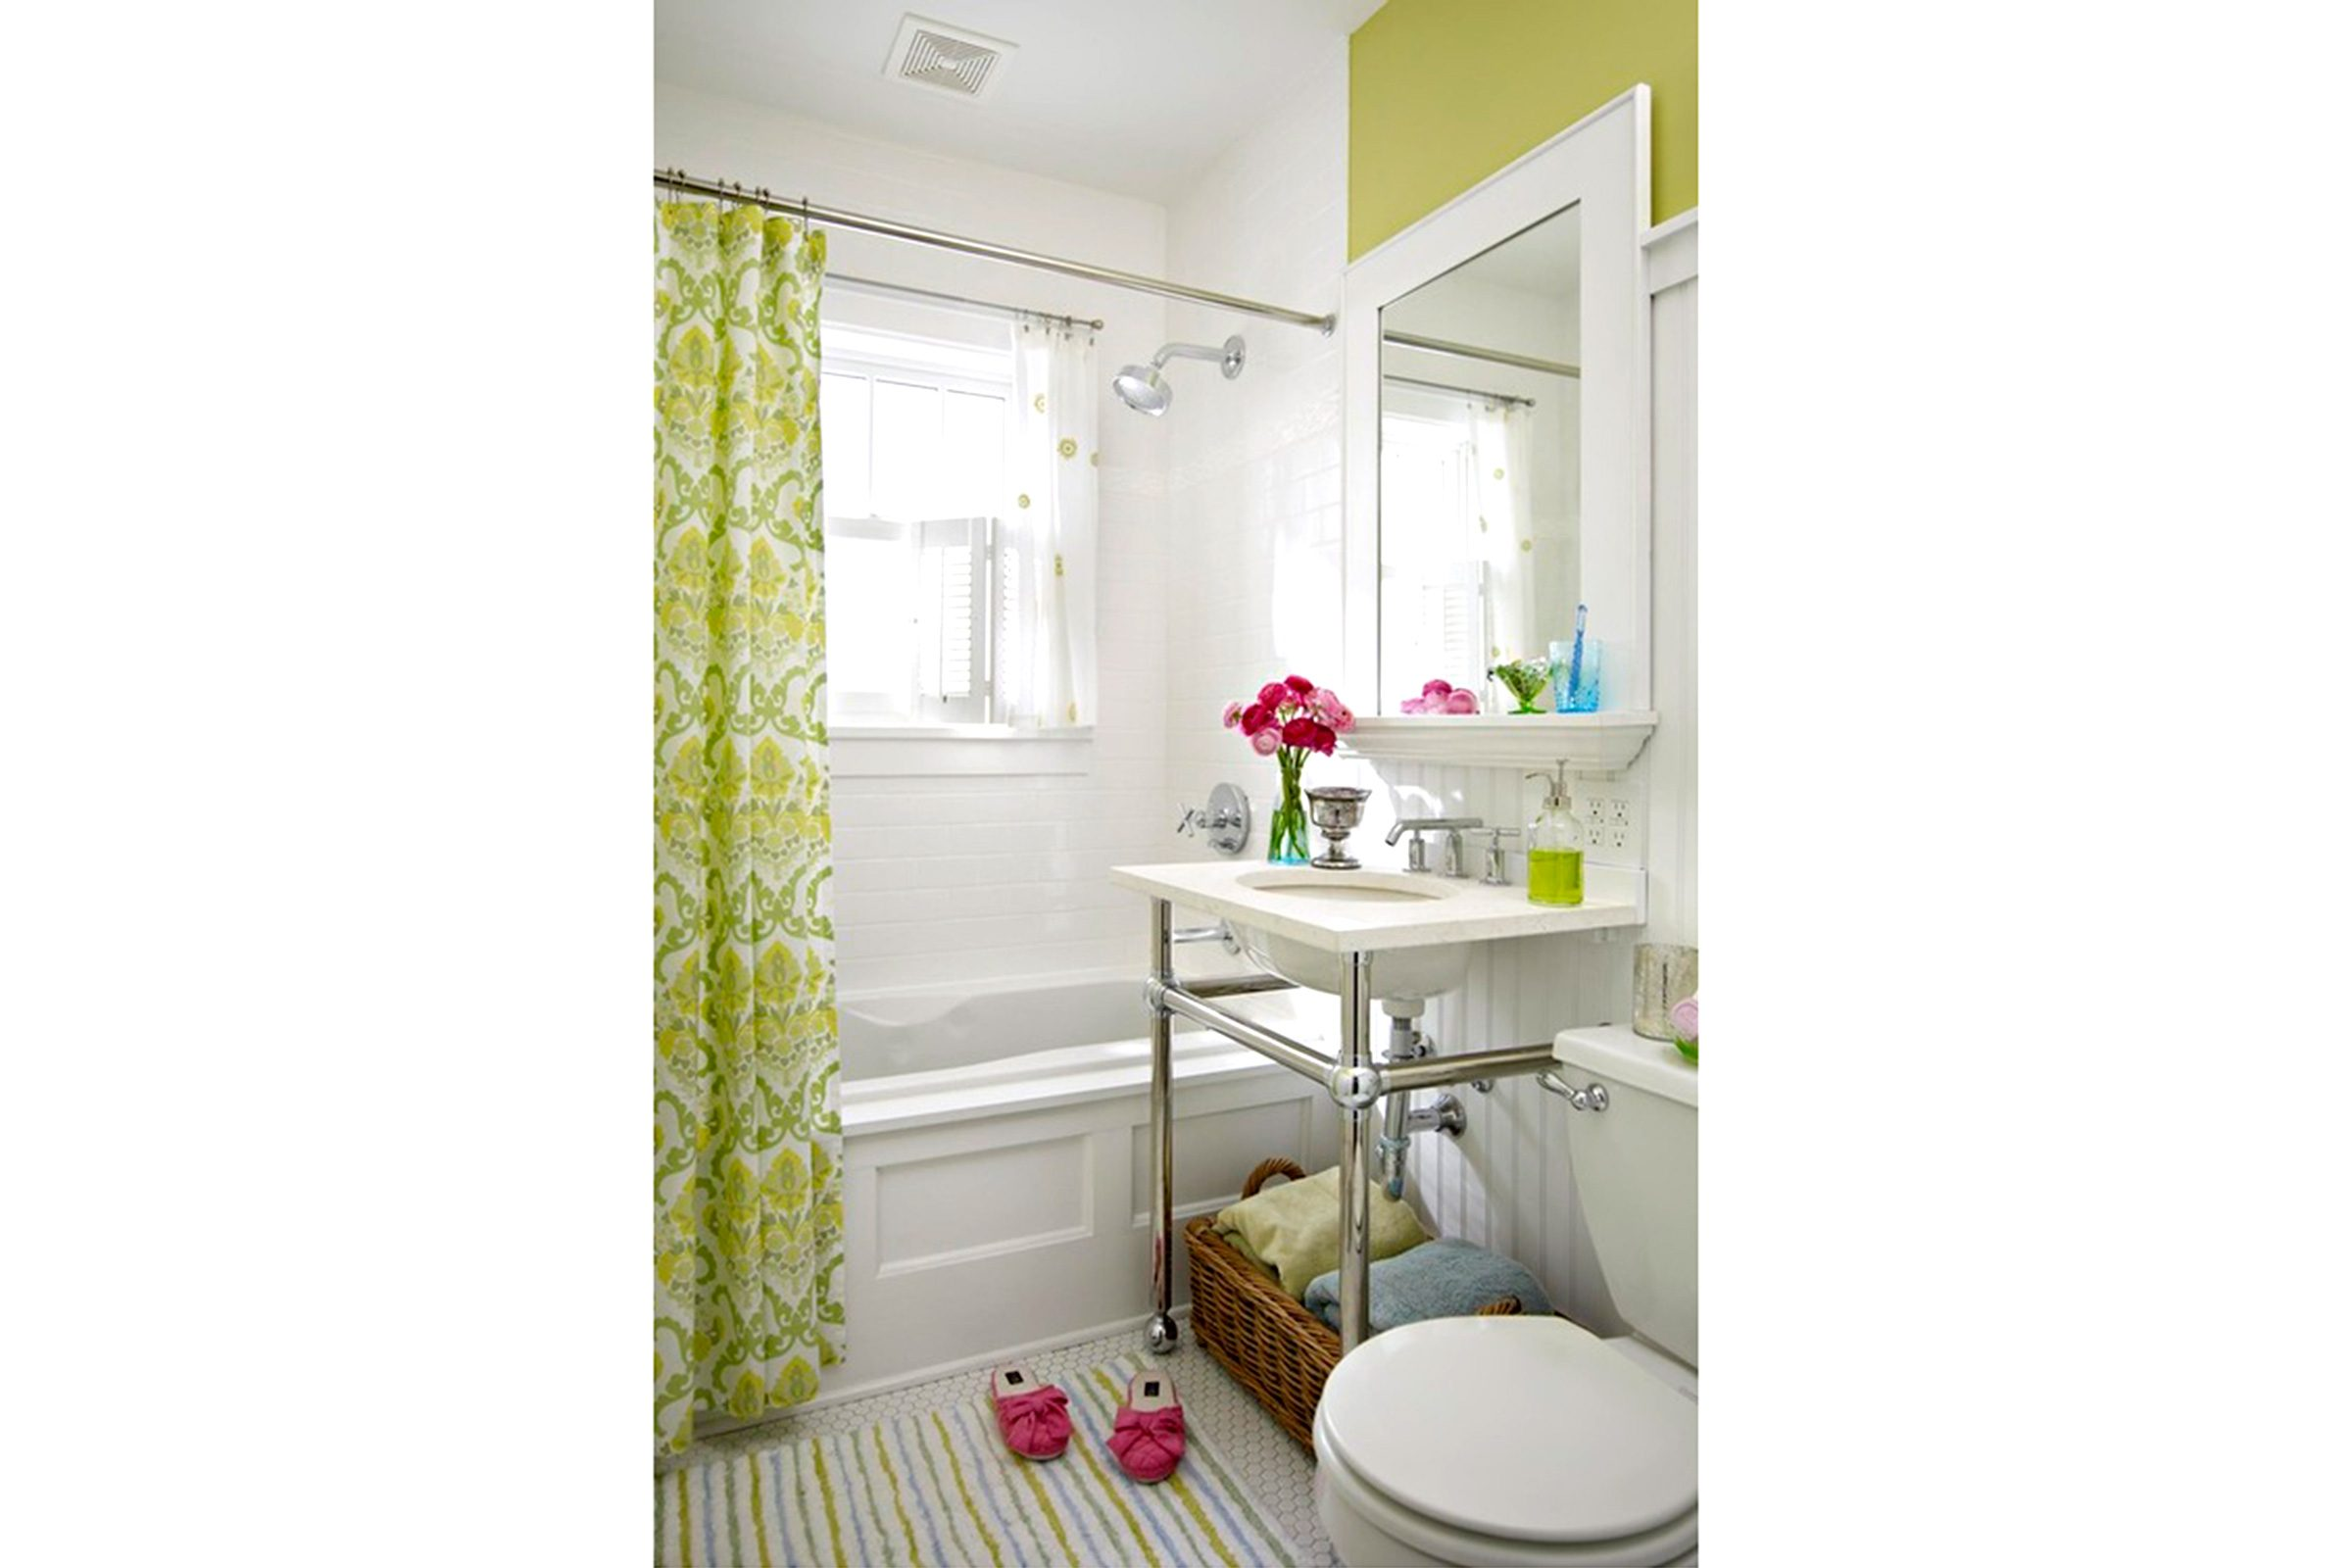 Bathroom Mini Makeovers mini bathroom makeovers: easy bathroom design ideas | reader's digest